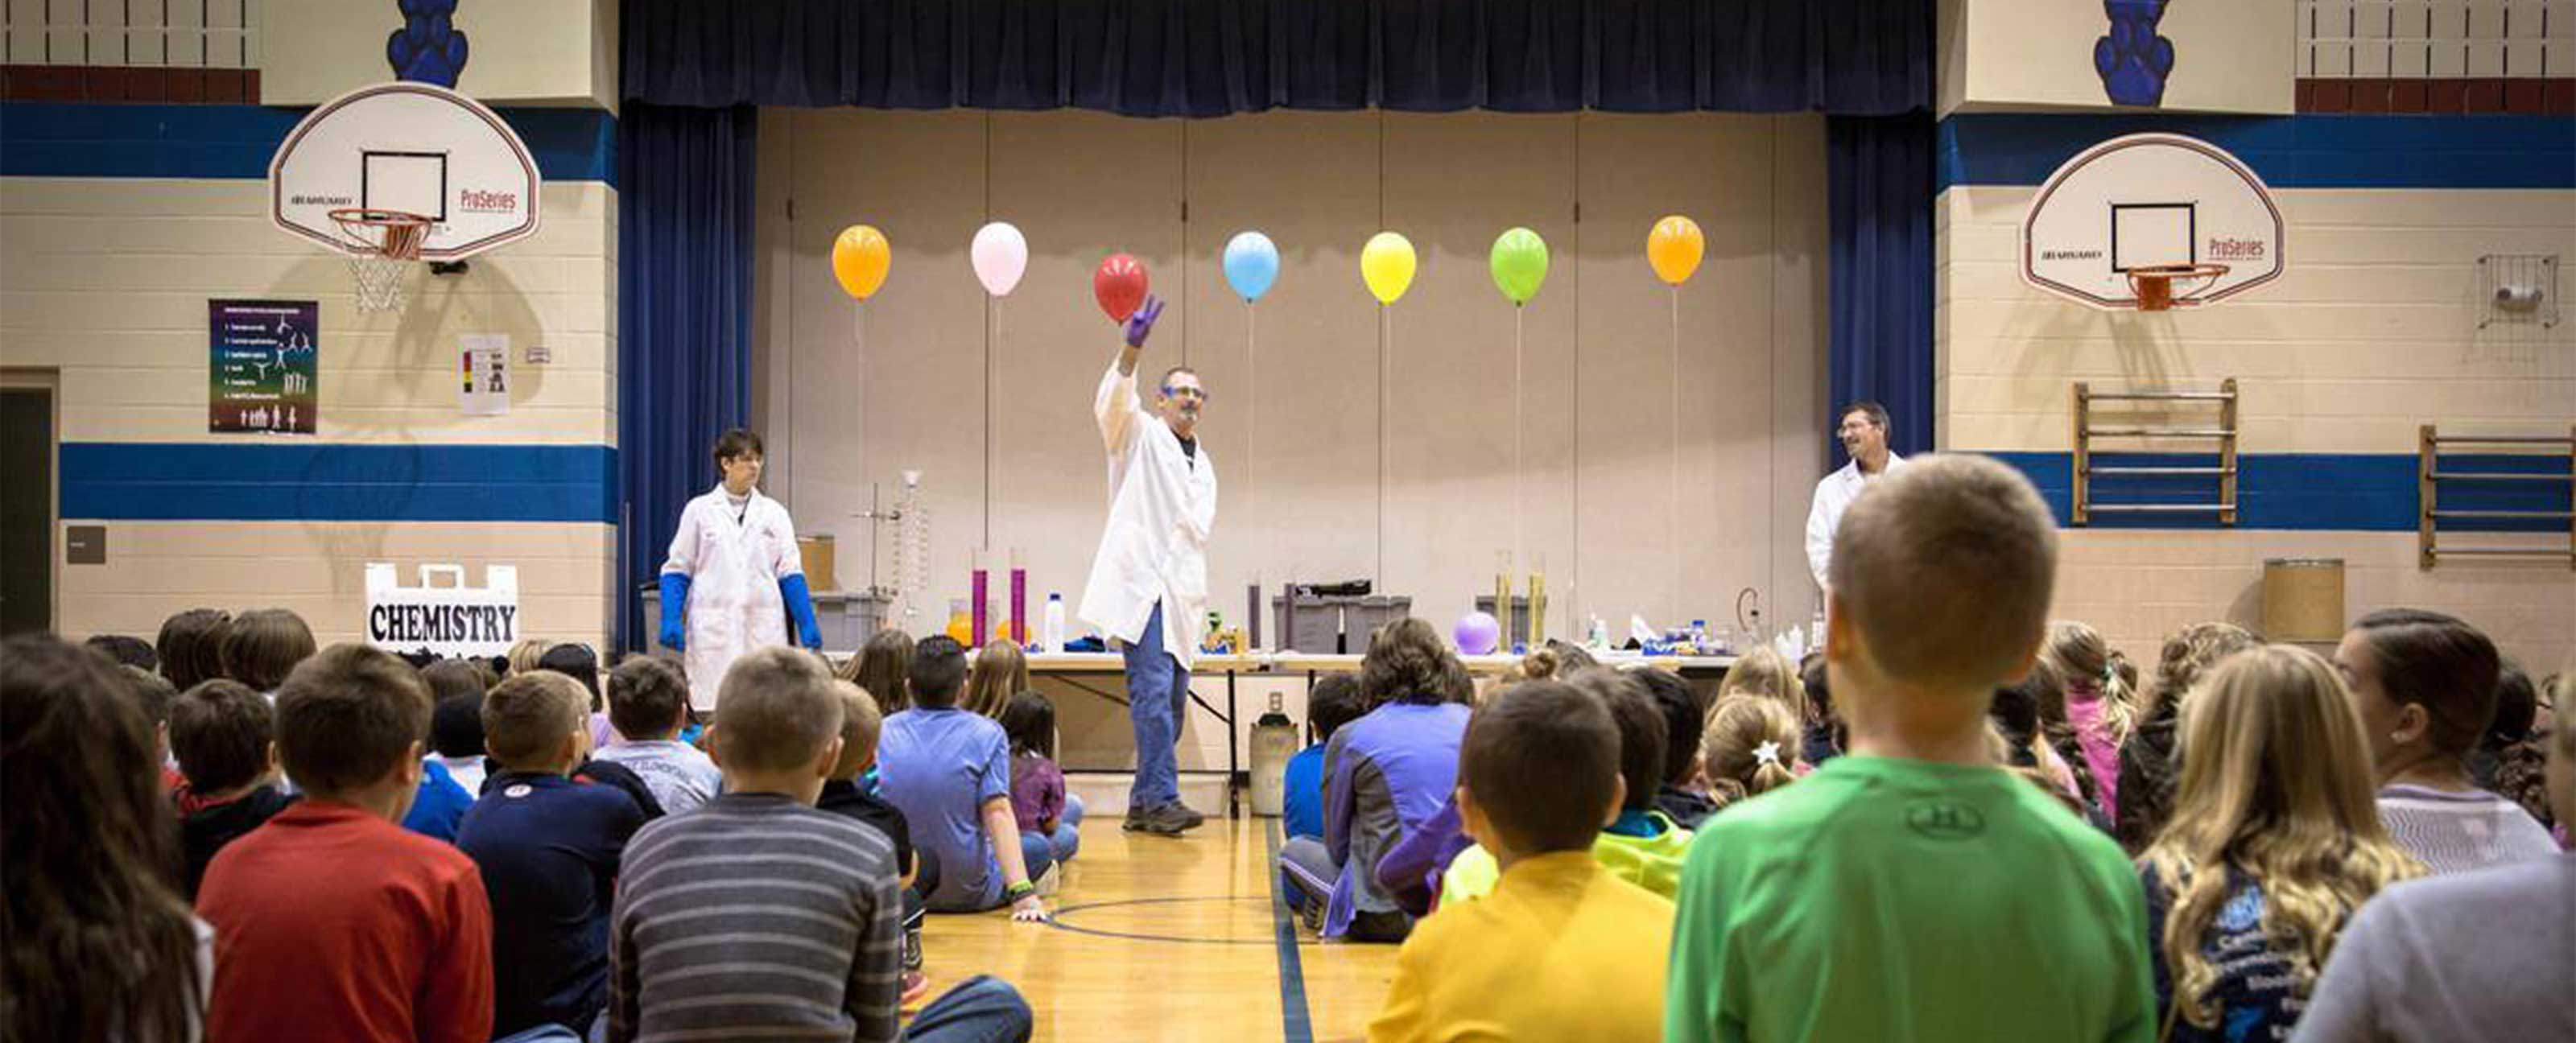 chemistry is a blast event photo from facebook